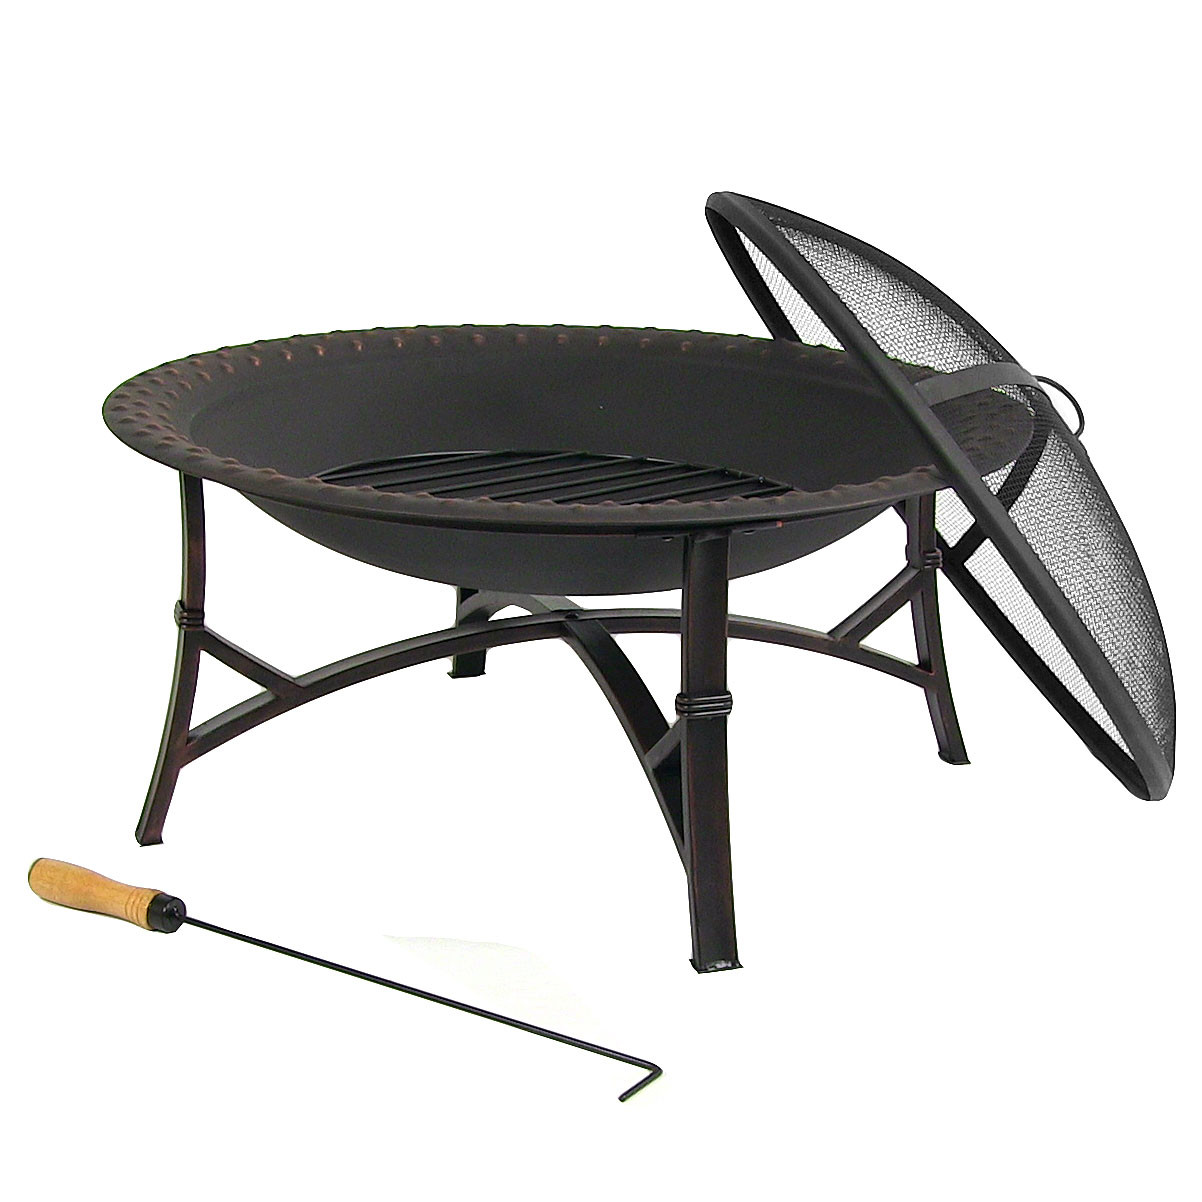 Sunnydaze Hammered Steel Fire Pit Diameter Picture 579